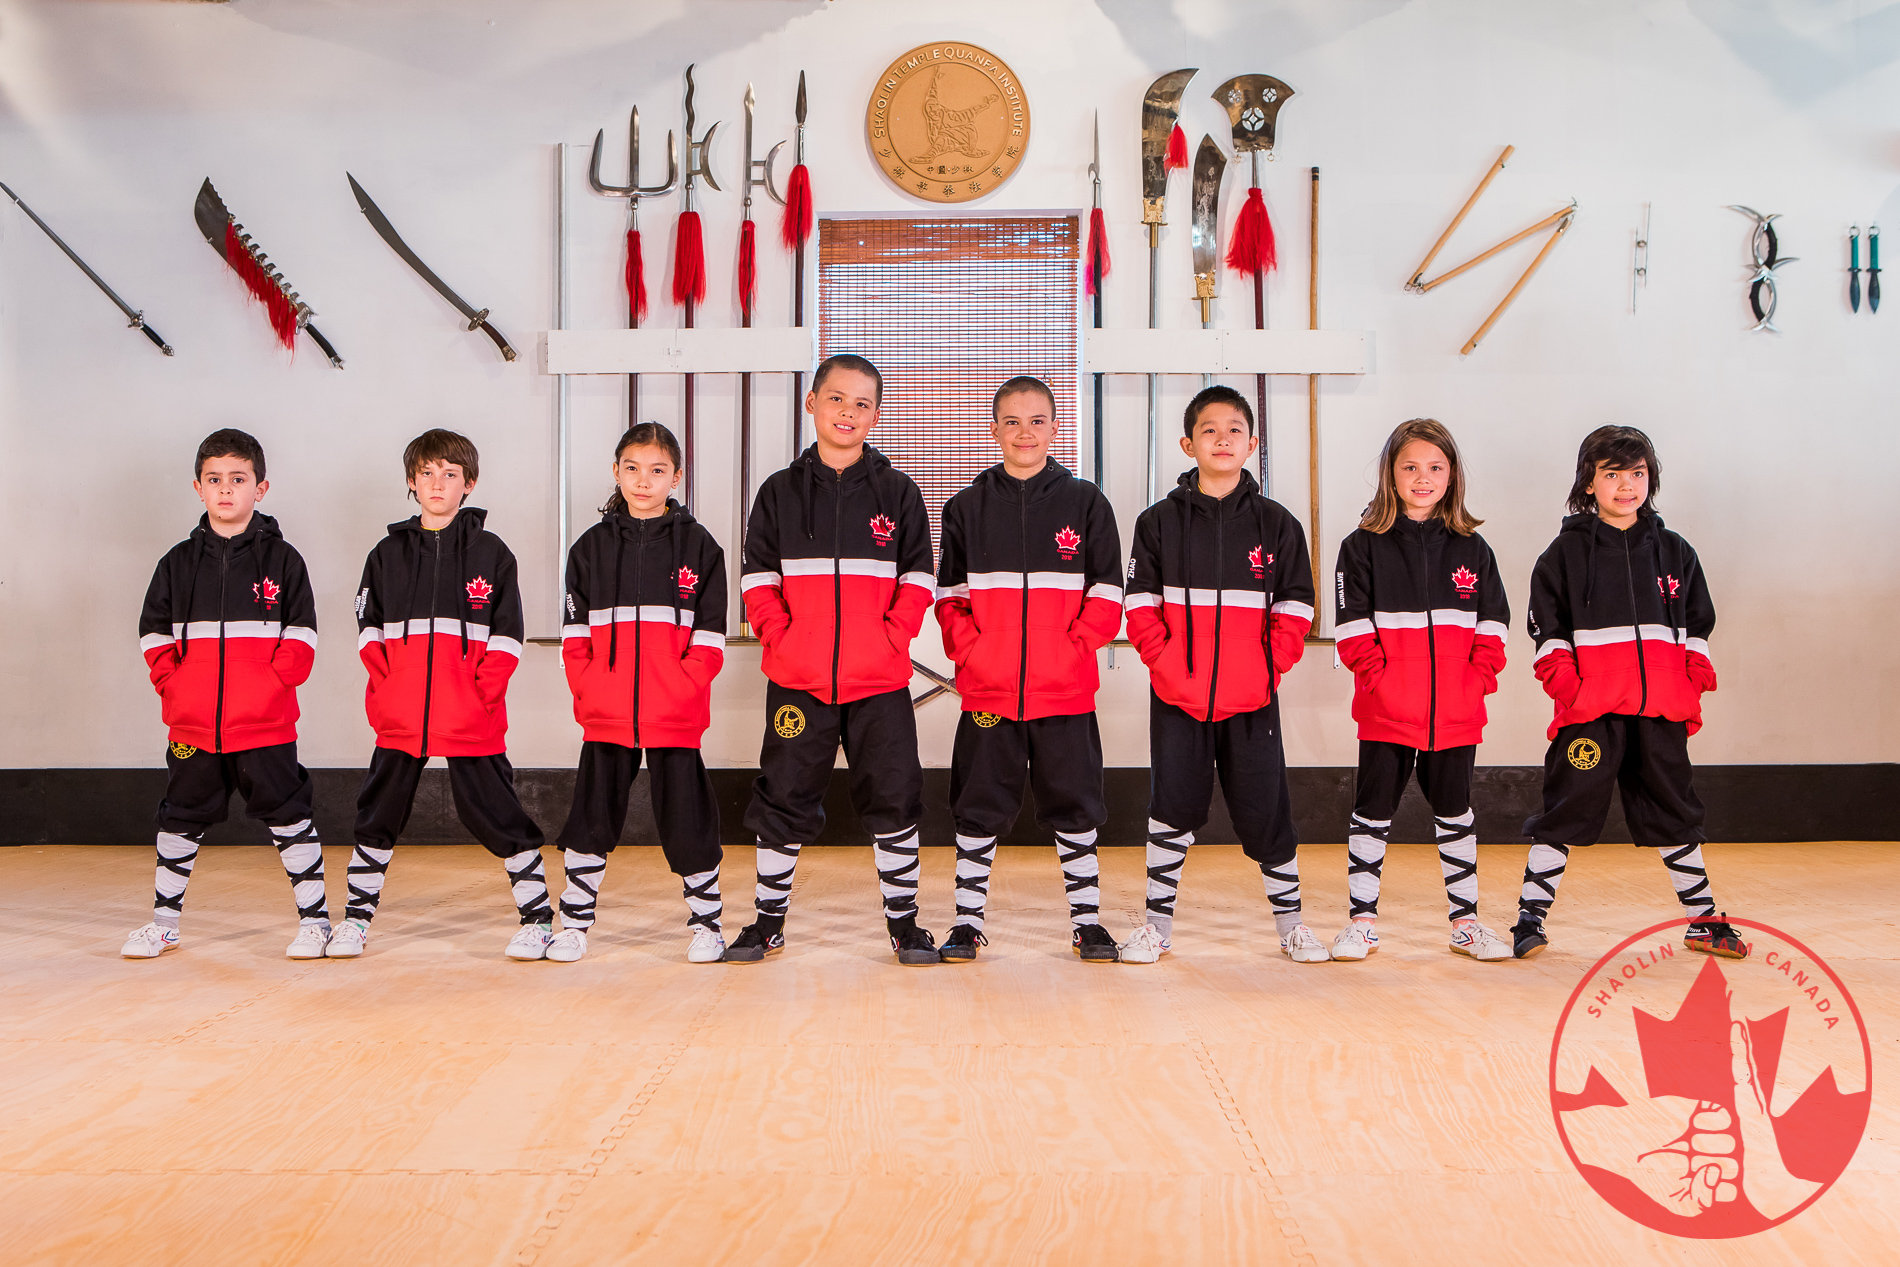 Shaolin Team Canada Children Team Wearing Jackets Supplied by Eagle View International